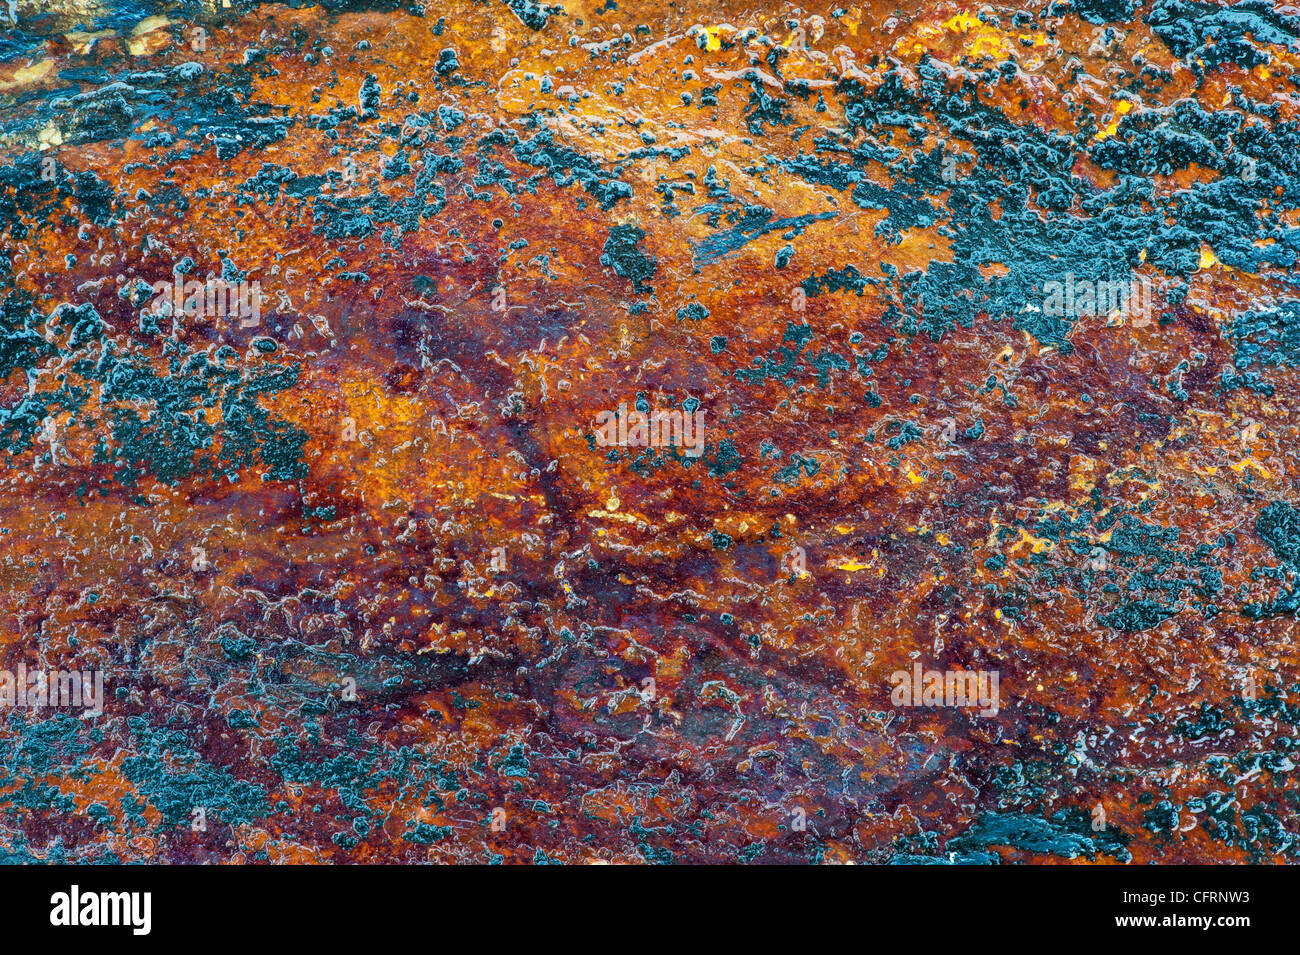 Ardoise de couleur oxydées Wet texture pattern Photo Stock